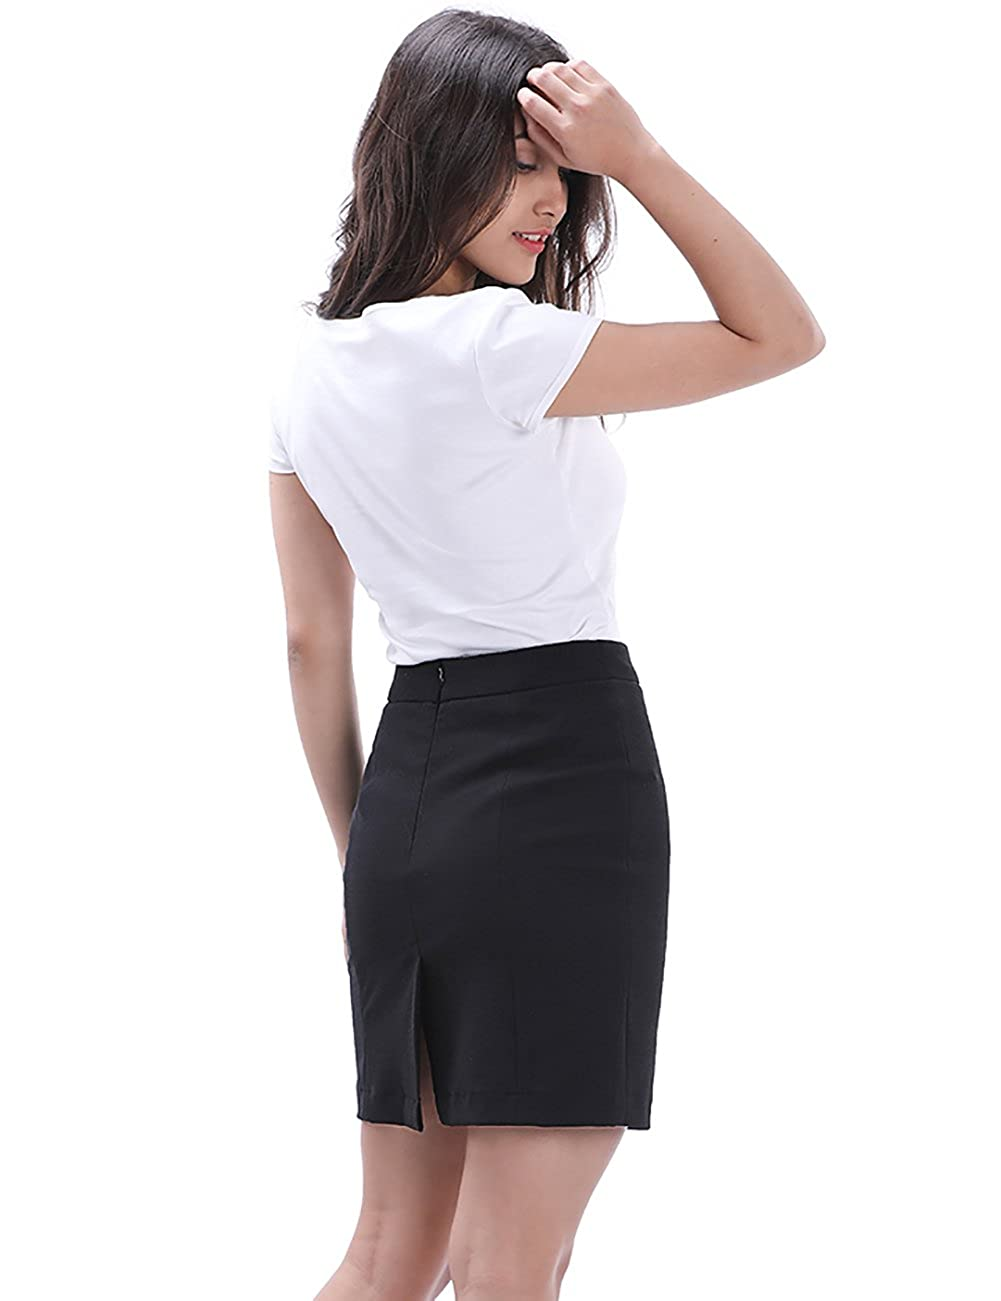 d153a0f49 FEATURES: Slim Fit, Zipper Closure, Split Back, Bodycon Skirt, High Waist  Pencil Skirt, Pure Black Color, Short Fitted Mini Skirt